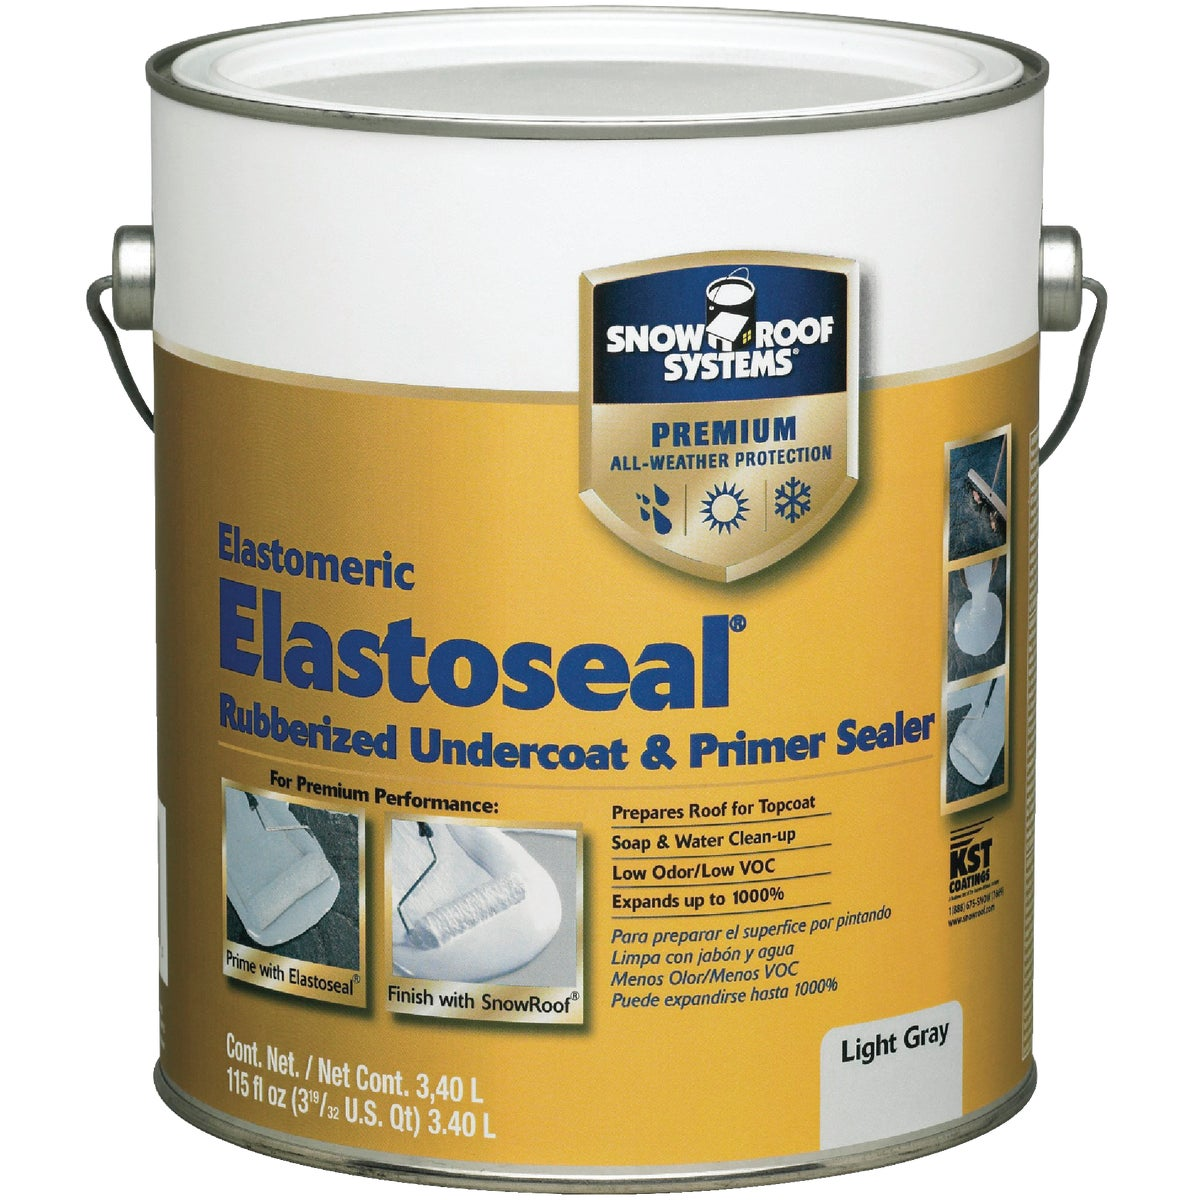 GAL ELAST SEAL UNDERCOAT - ES-1 by Snow Roof